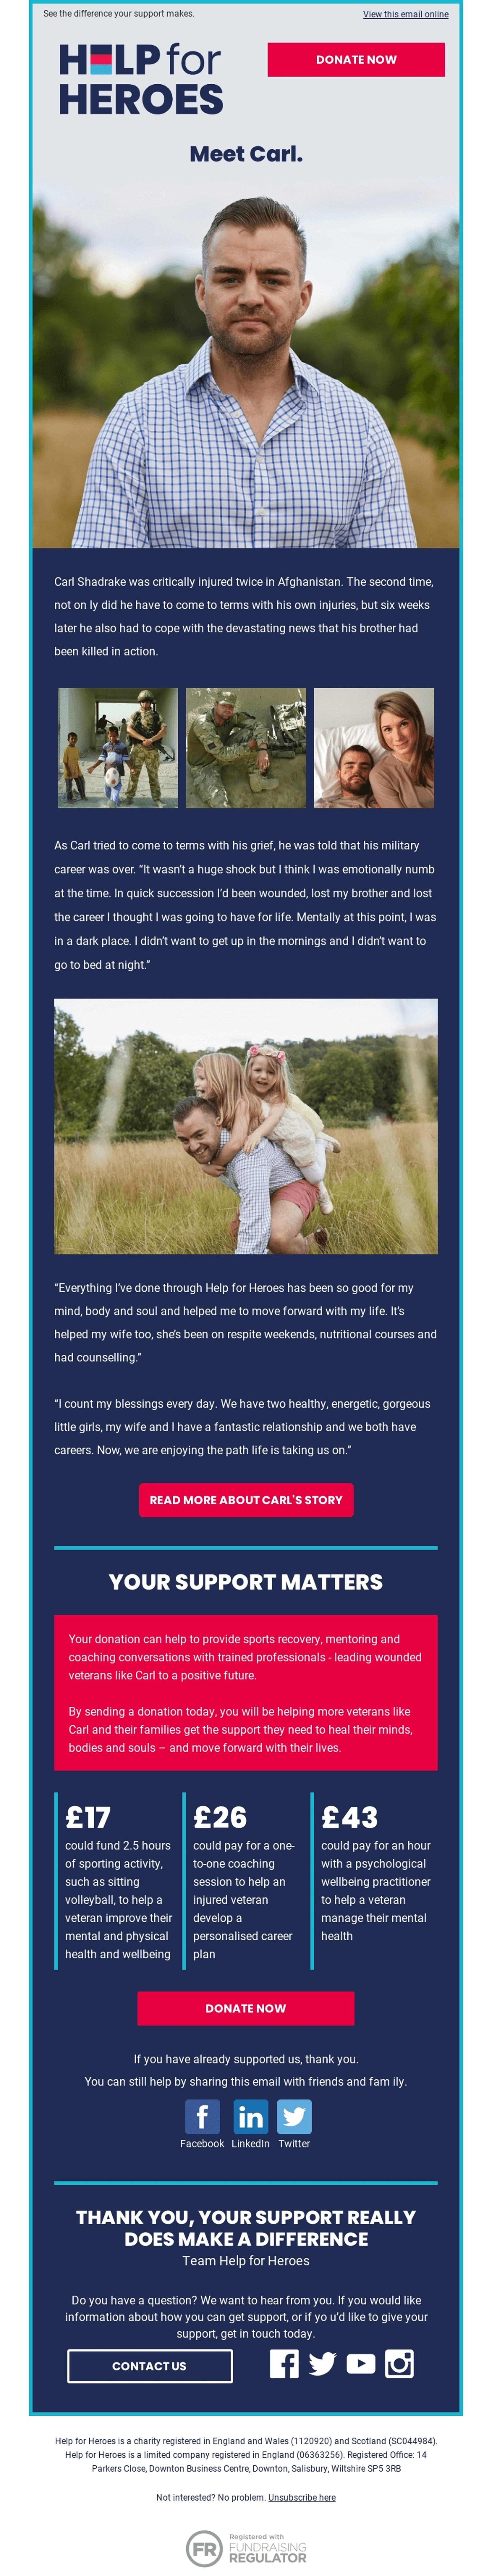 Help for Heroes email using hope as an emotional trigger by telling real stories